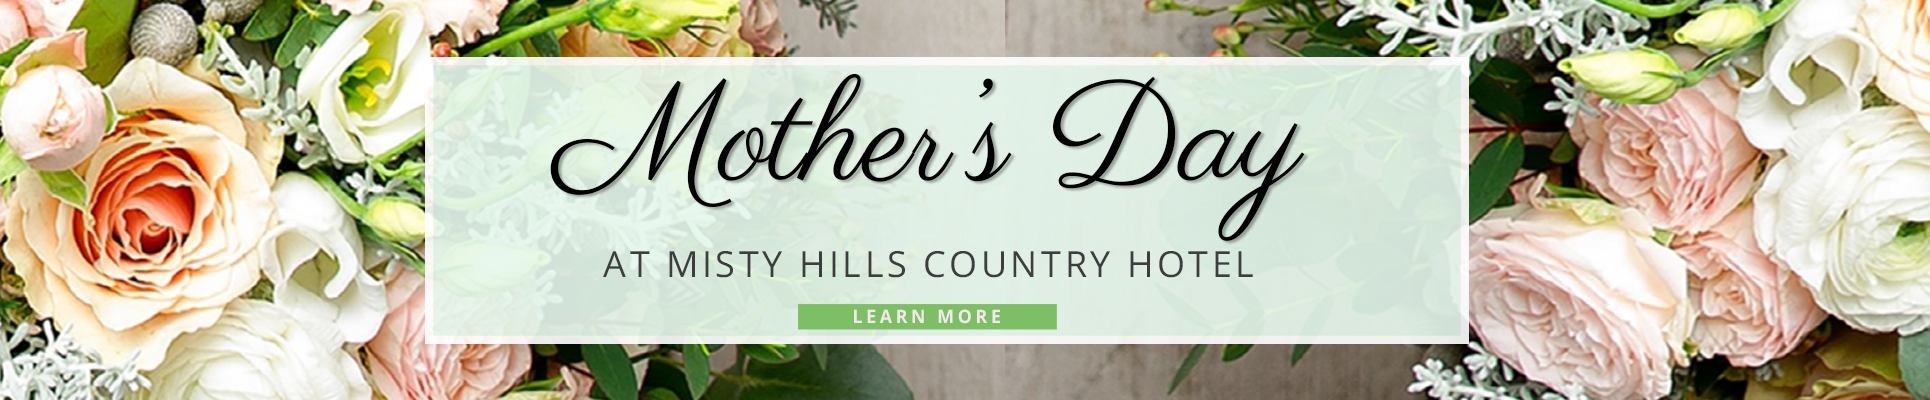 Misty Hills Country Hotel Mothers Day Specials Gauteng Muldersdrift venues